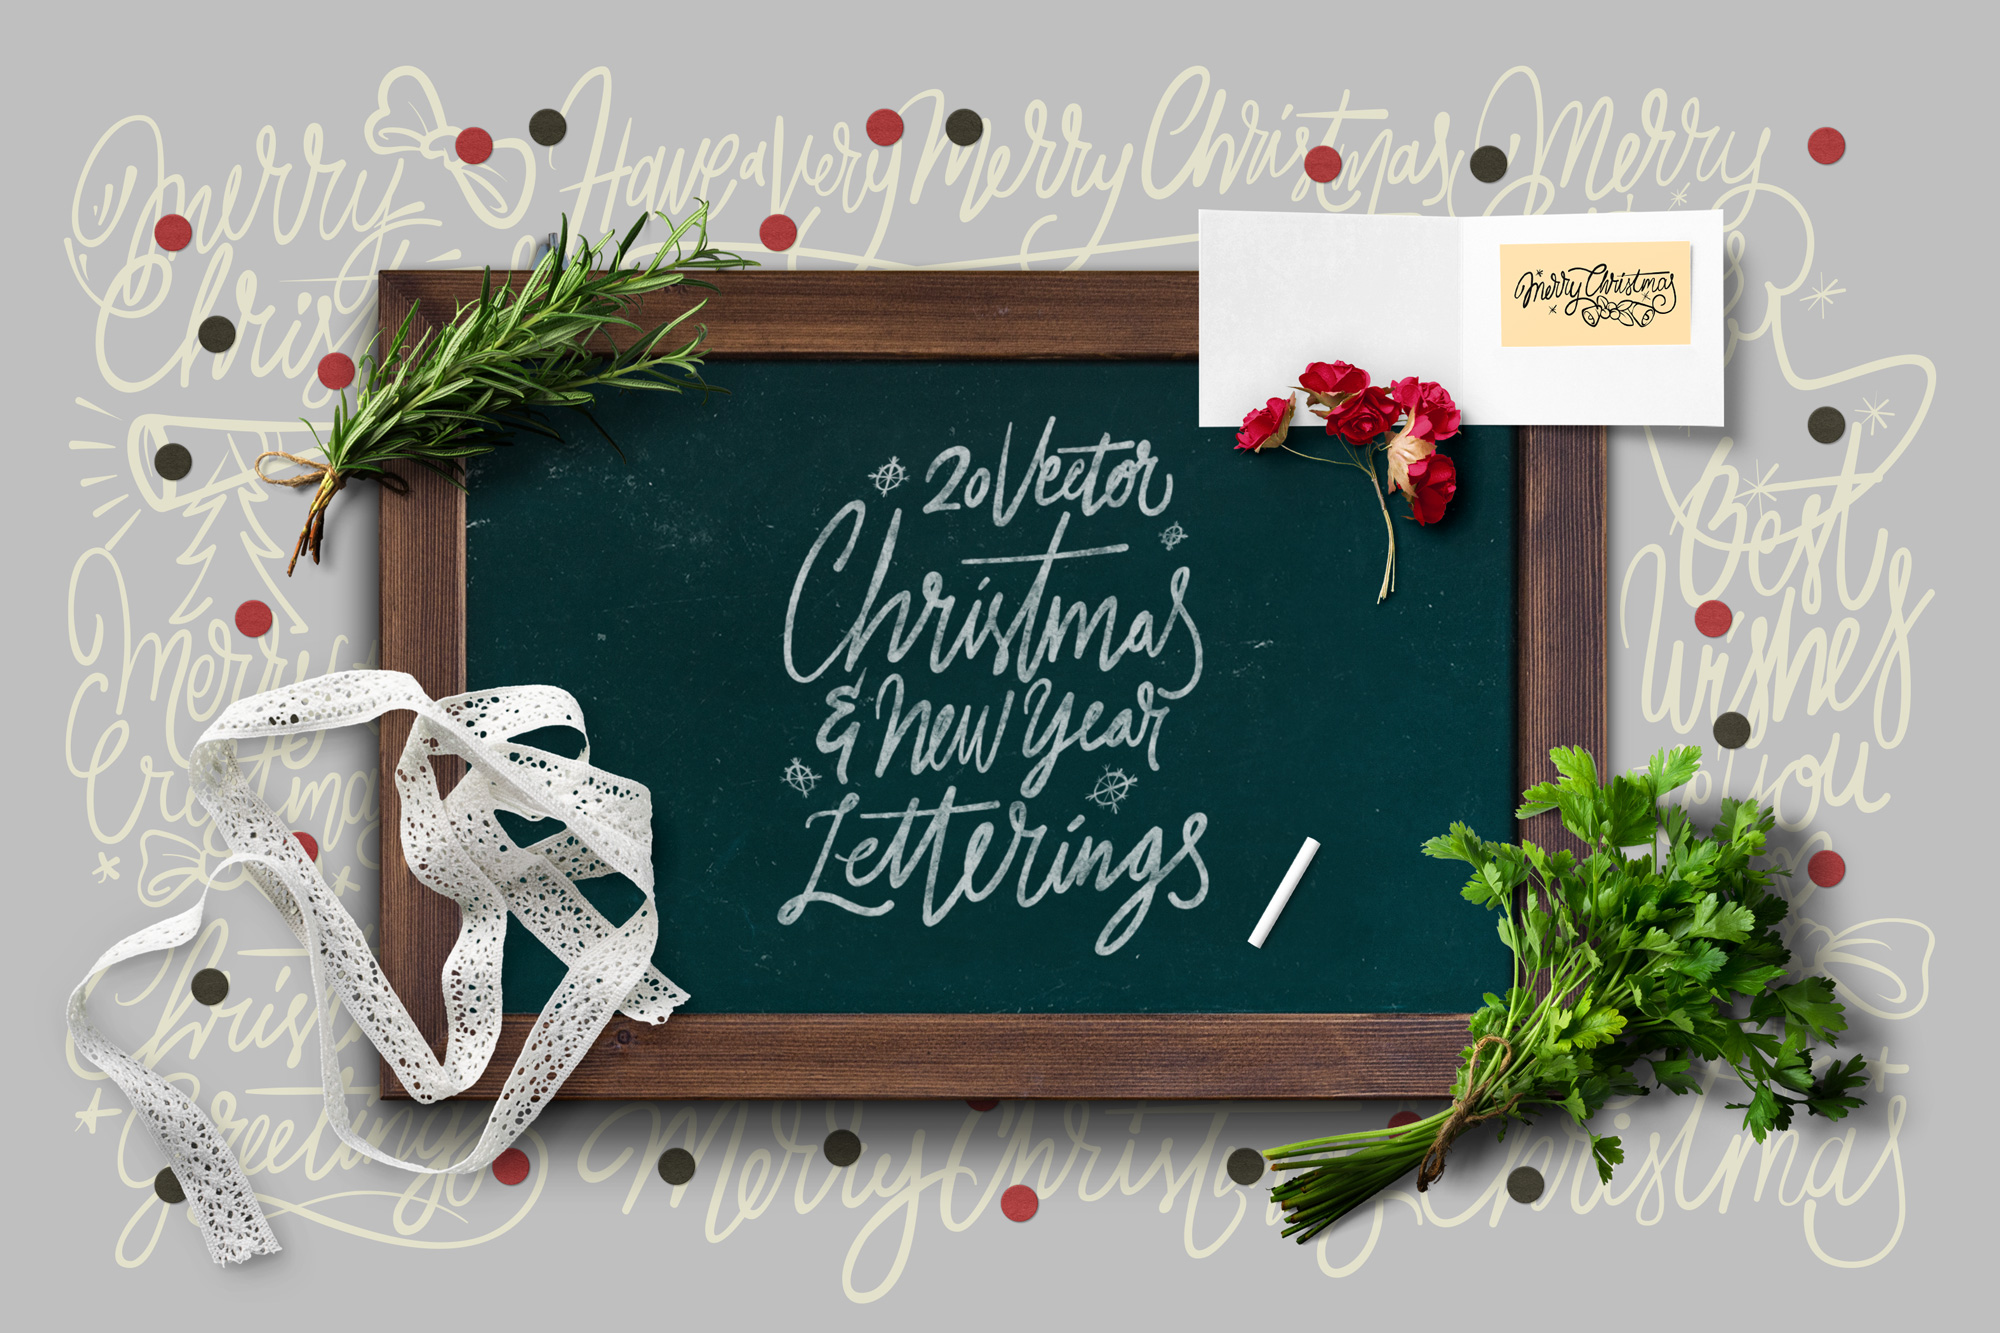 Download Free 20 Christmas Nye Letterings Vector Graphic By Ihsankl for Cricut Explore, Silhouette and other cutting machines.